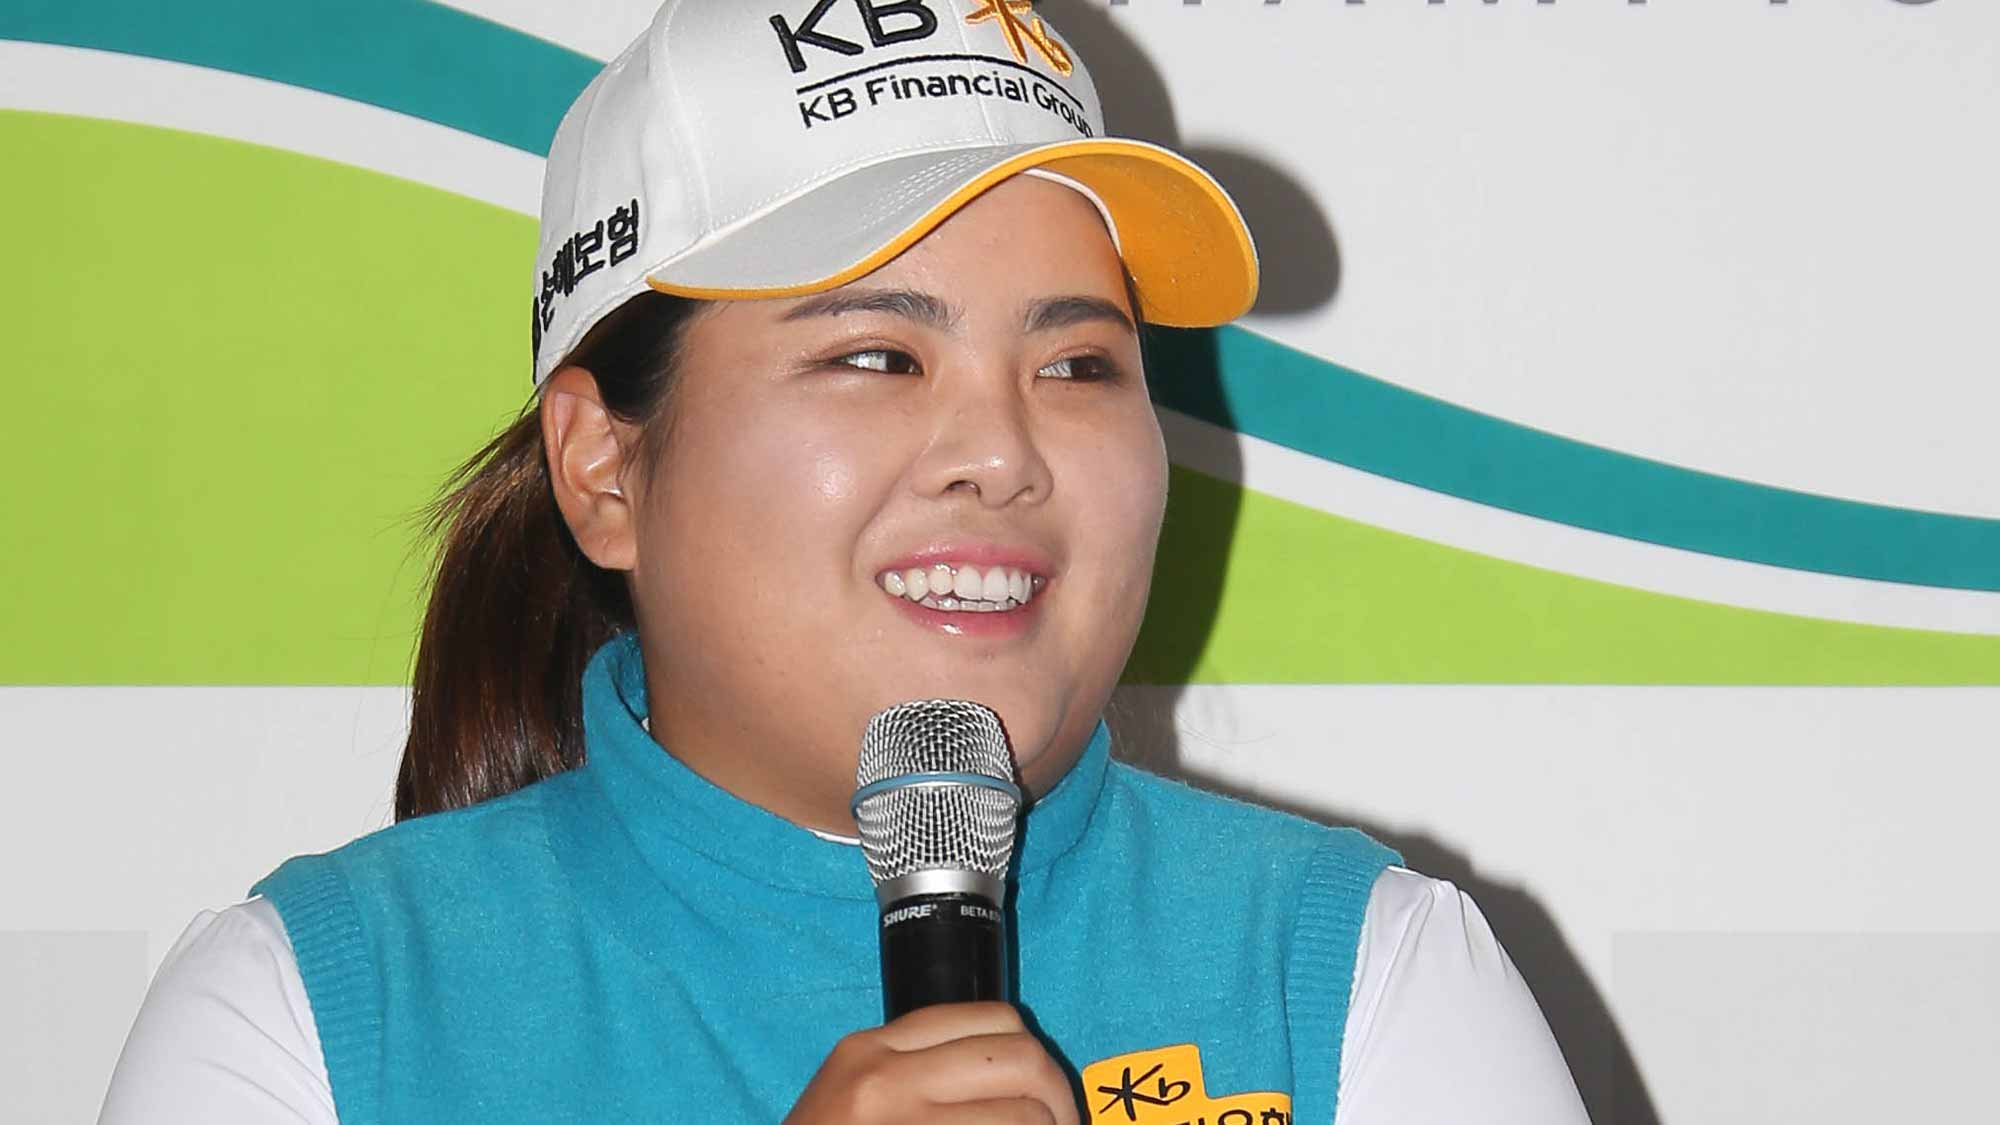 Inbee Park Addresses The Media During A Pre-Tournament Press Conference at LPGA KEB Hana Bank Championship